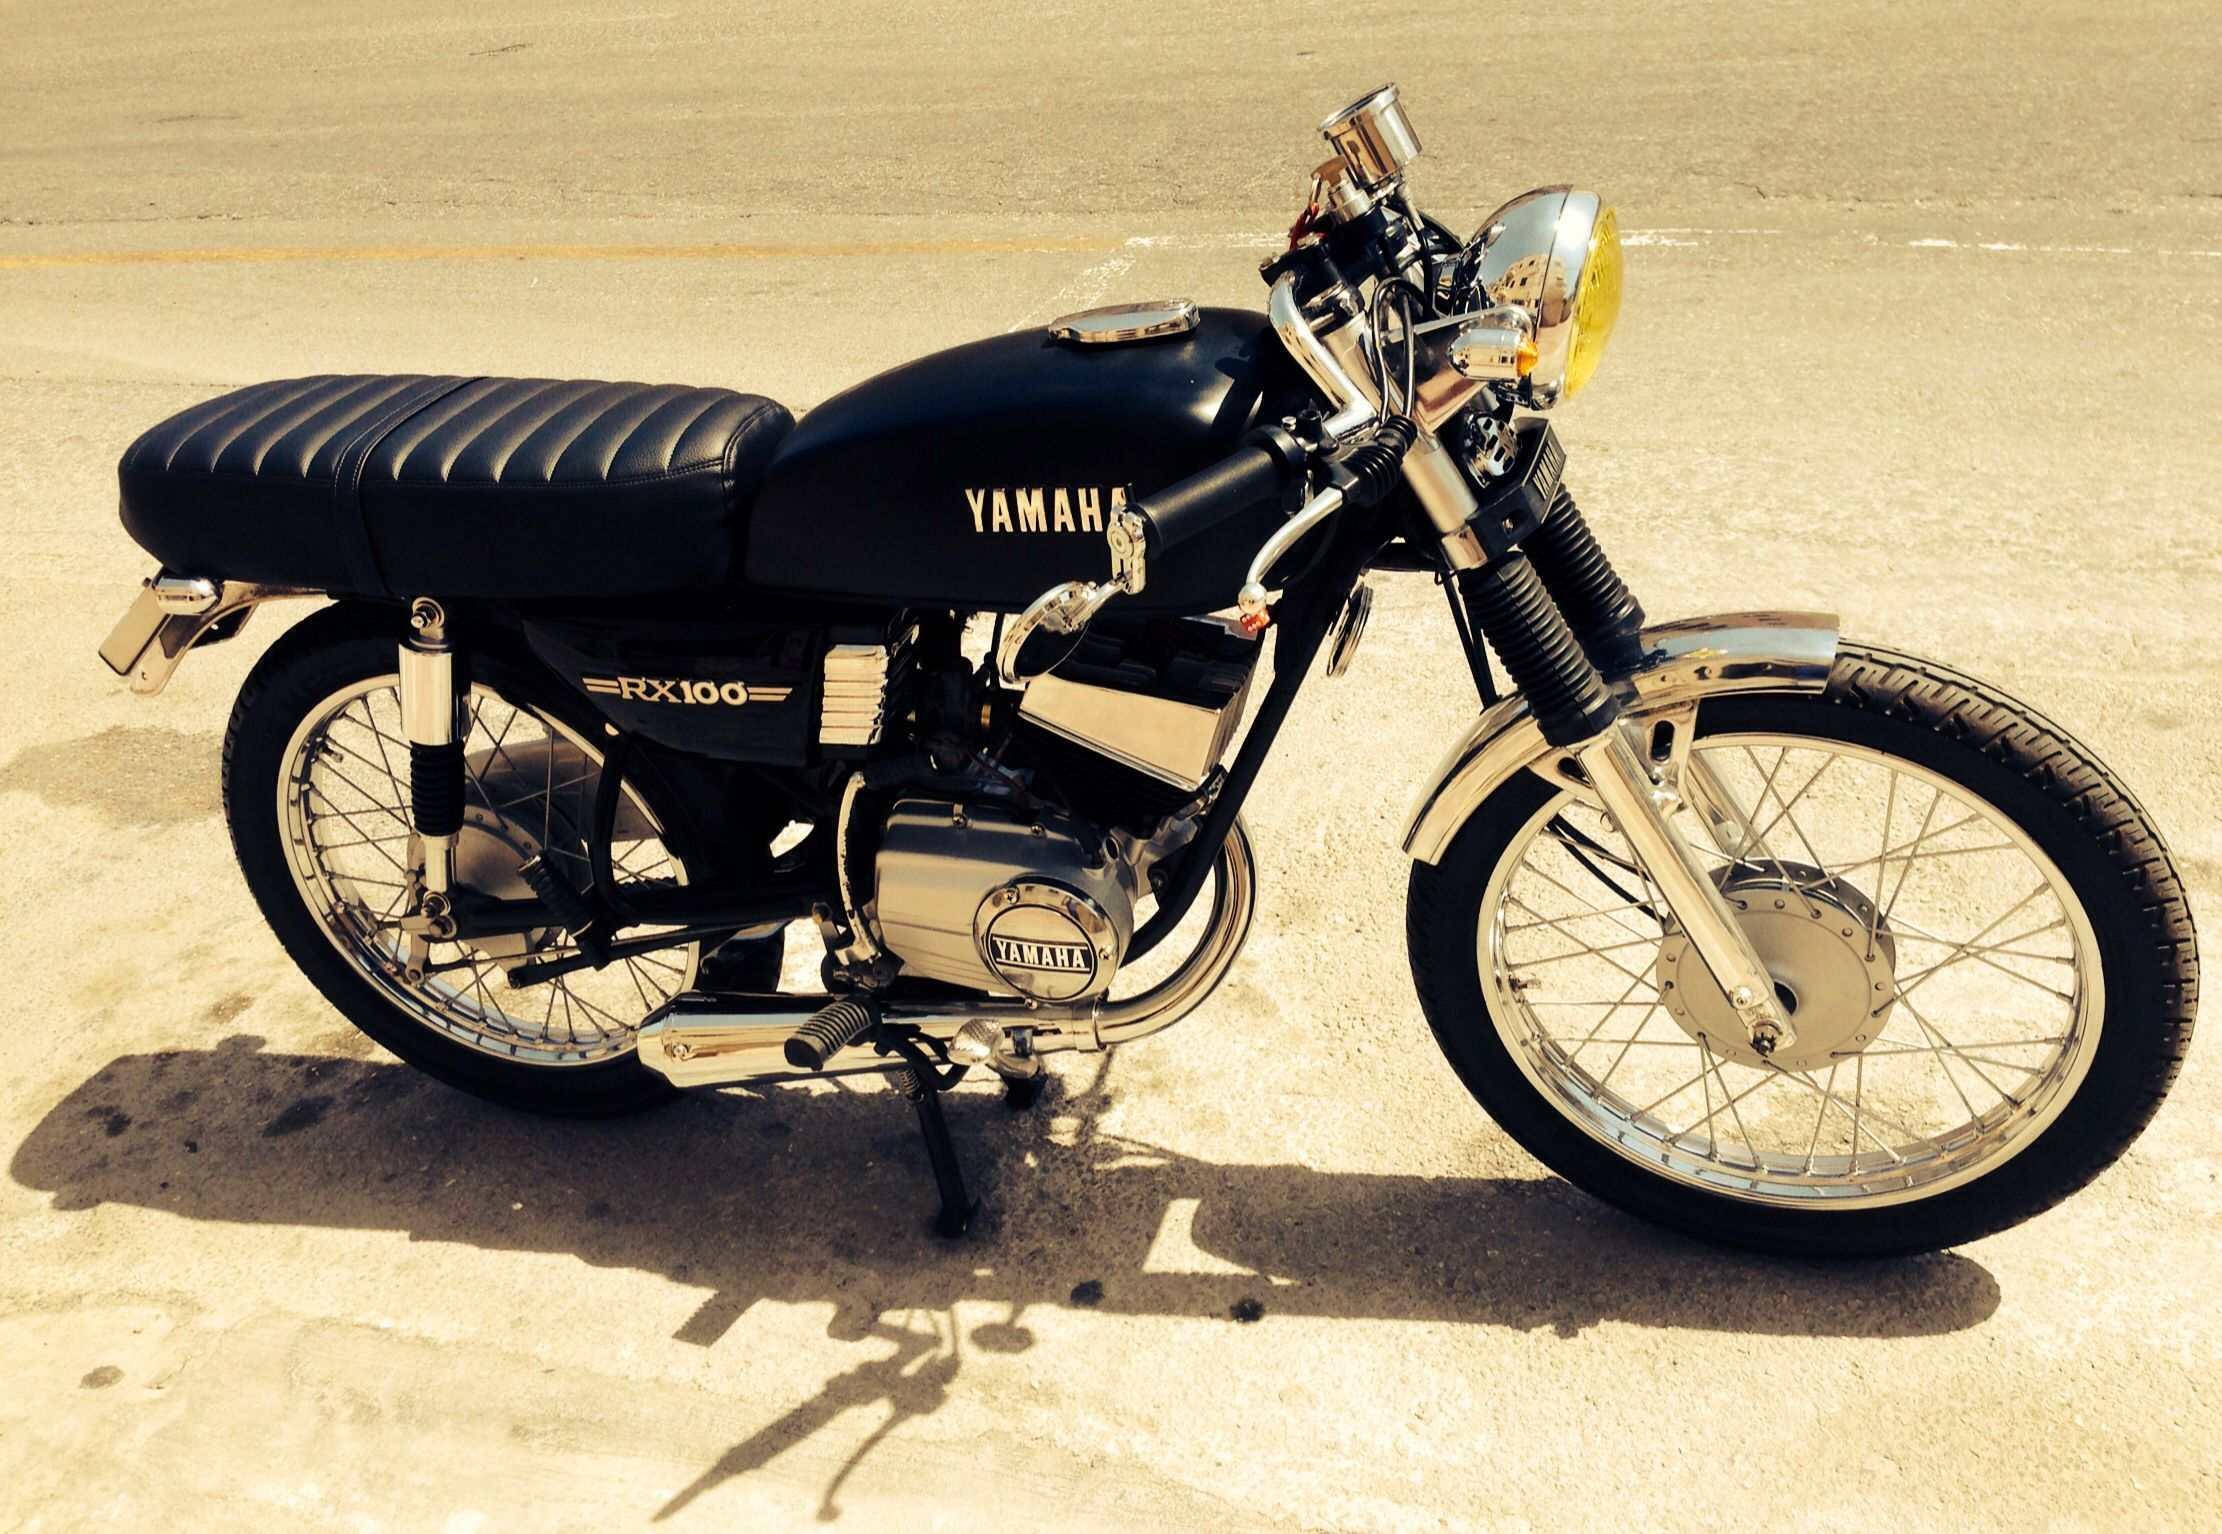 Yamaha RX100 cafe' racer | motorcycles,cafes and the rest